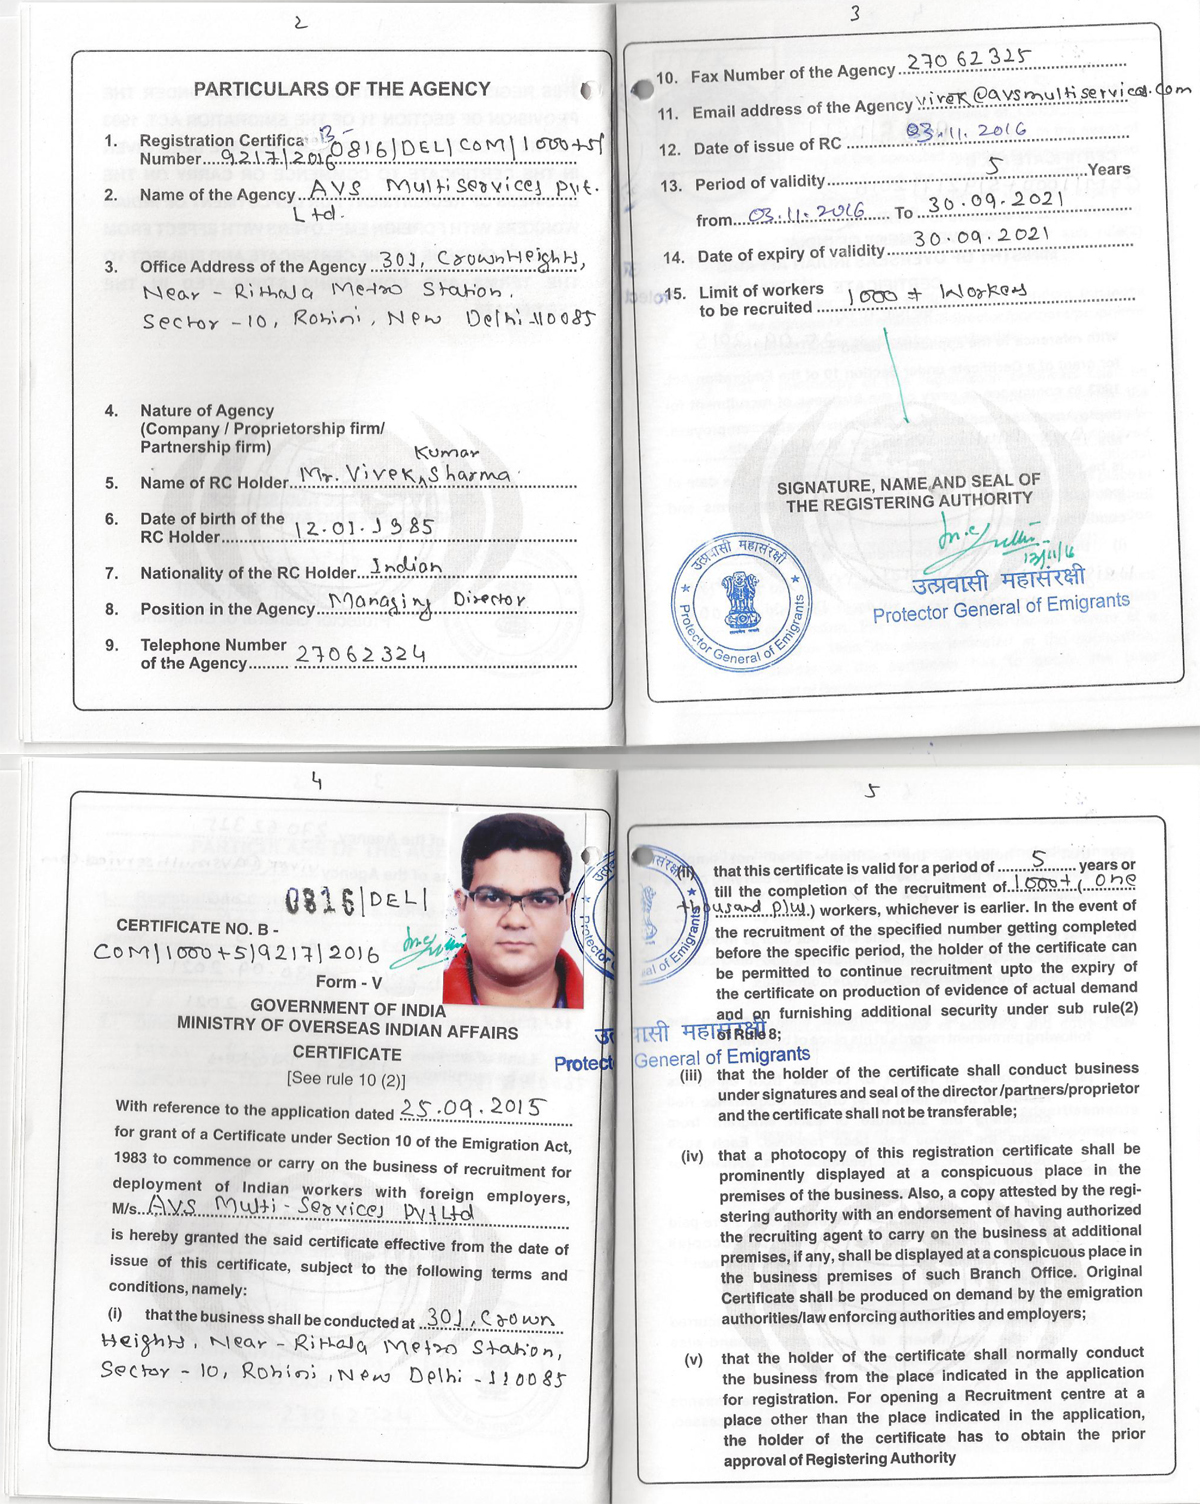 Registration Certificate | AVS Multiservices Pvt Ltd